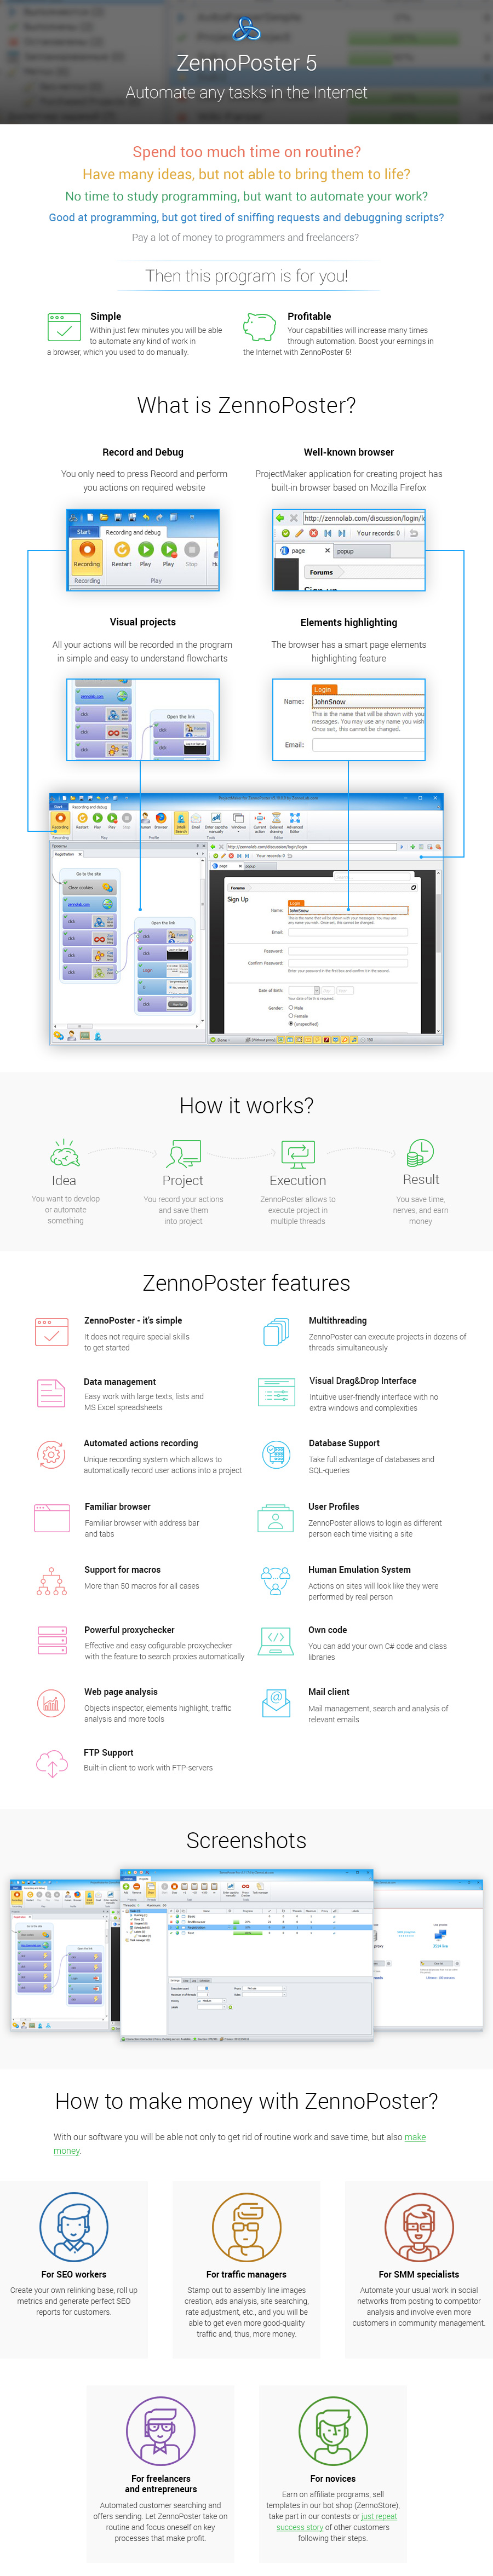 ZennoPoster 5 - Automate any task in the Internet